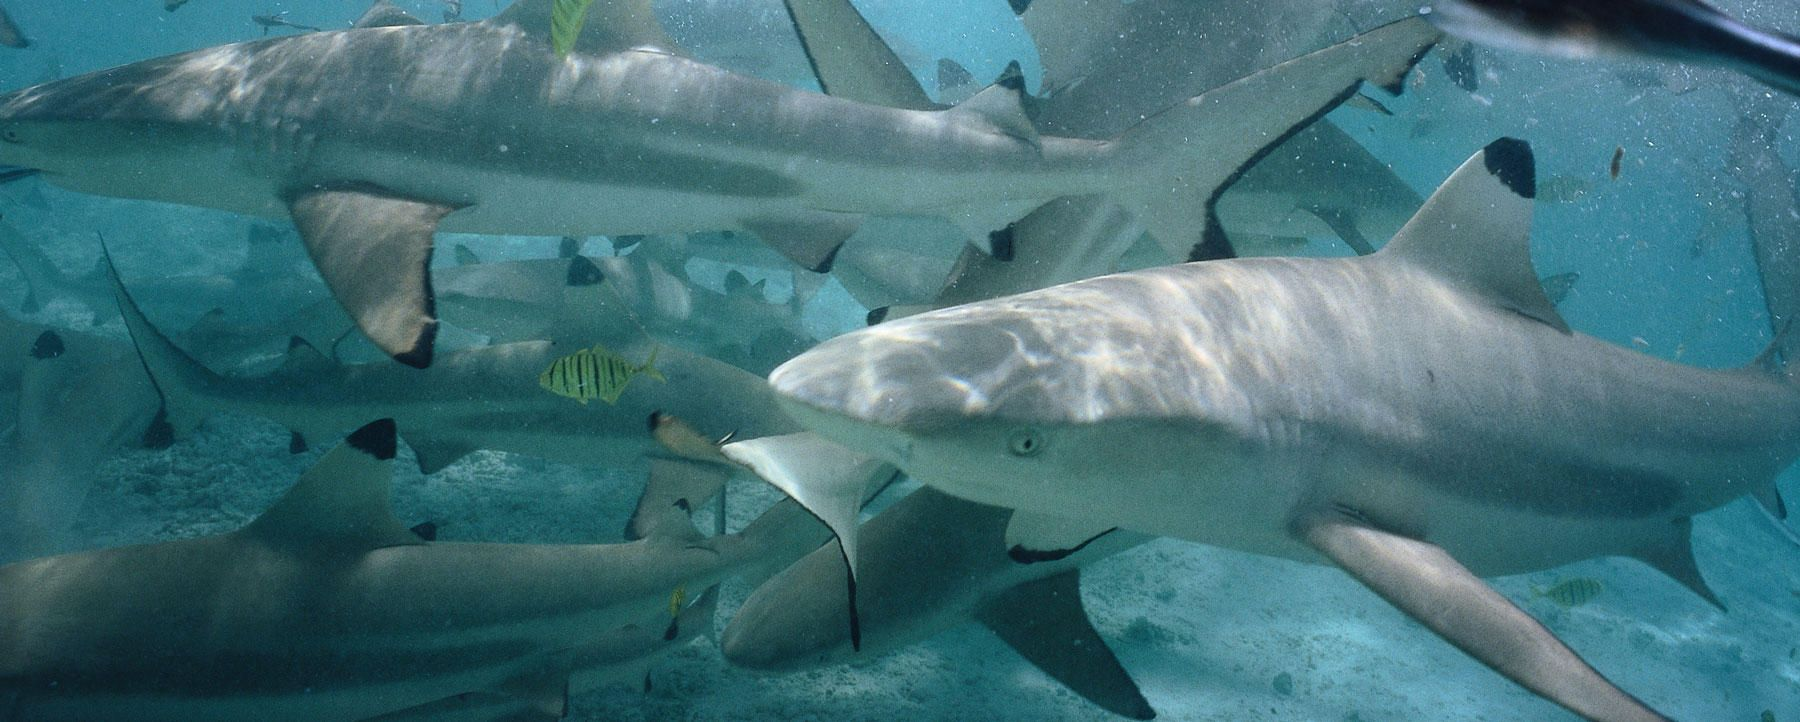 Study: Heavy Sediment Runoff Damages Shark and Fish Gills